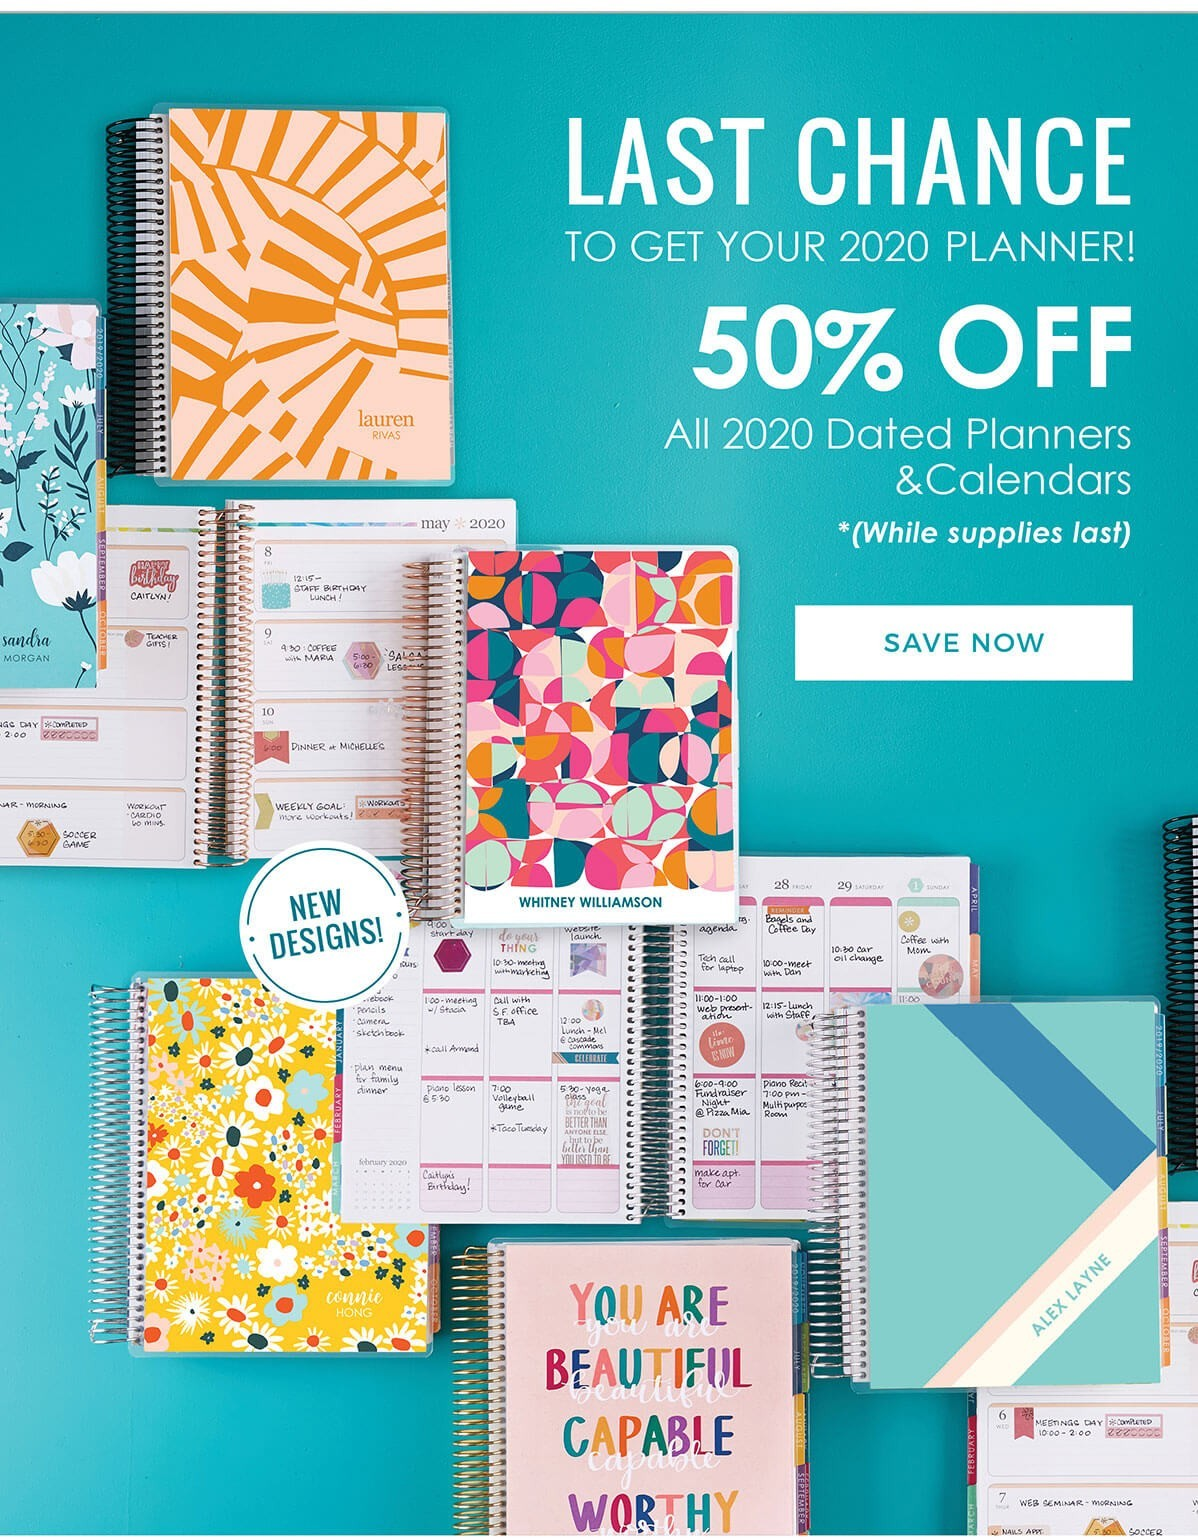 Erin Condren Sale – Save 50% off 2020 Dated Planners